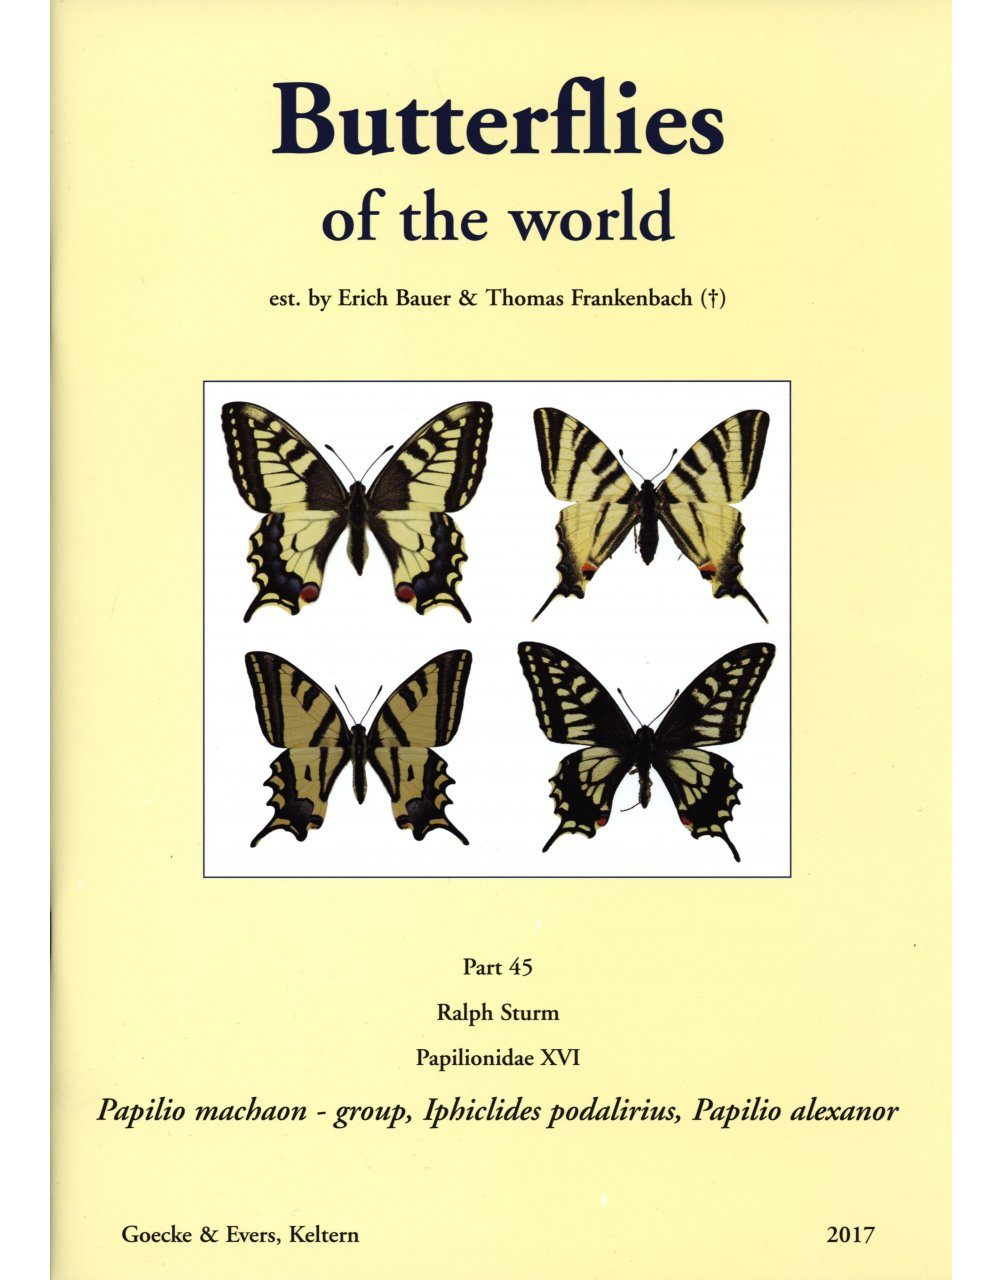 Butterflies of the World, Part 45: Papilionidae XVI: Illustrated Checklist of Papilio machaon-Group, Iphiclides podalirius, and Papilio alexanor